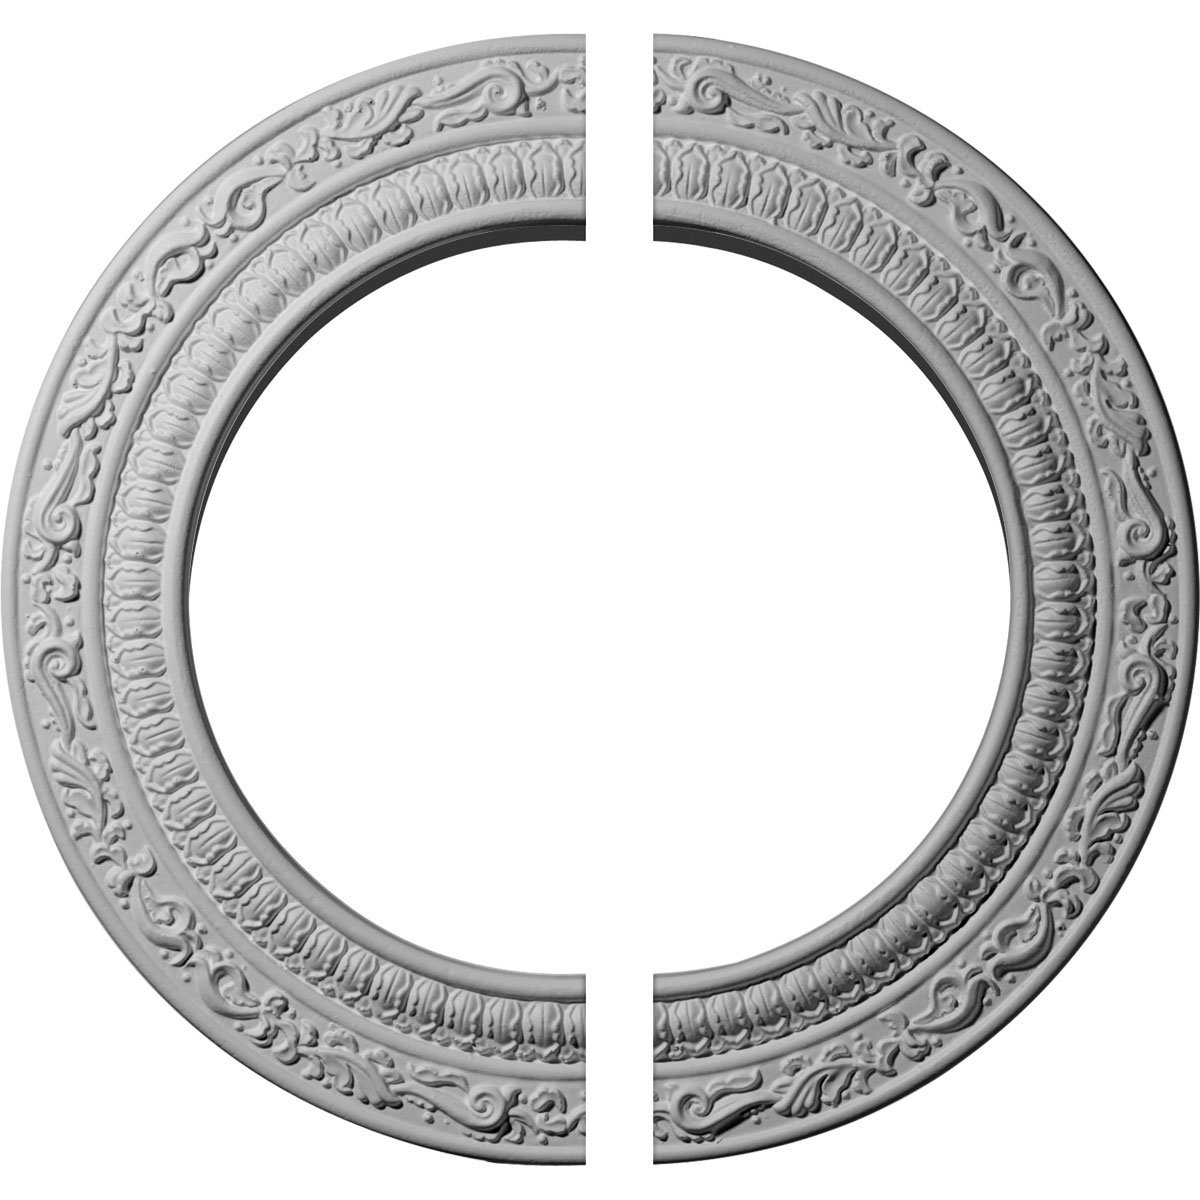 Ekena Millwork CM12AD2 12'' OD ID x 1/2'' P Andrea Ceiling Medallion, Two Piece (Fits Canopies up to 8''), Factory Primed and Ready to Paint